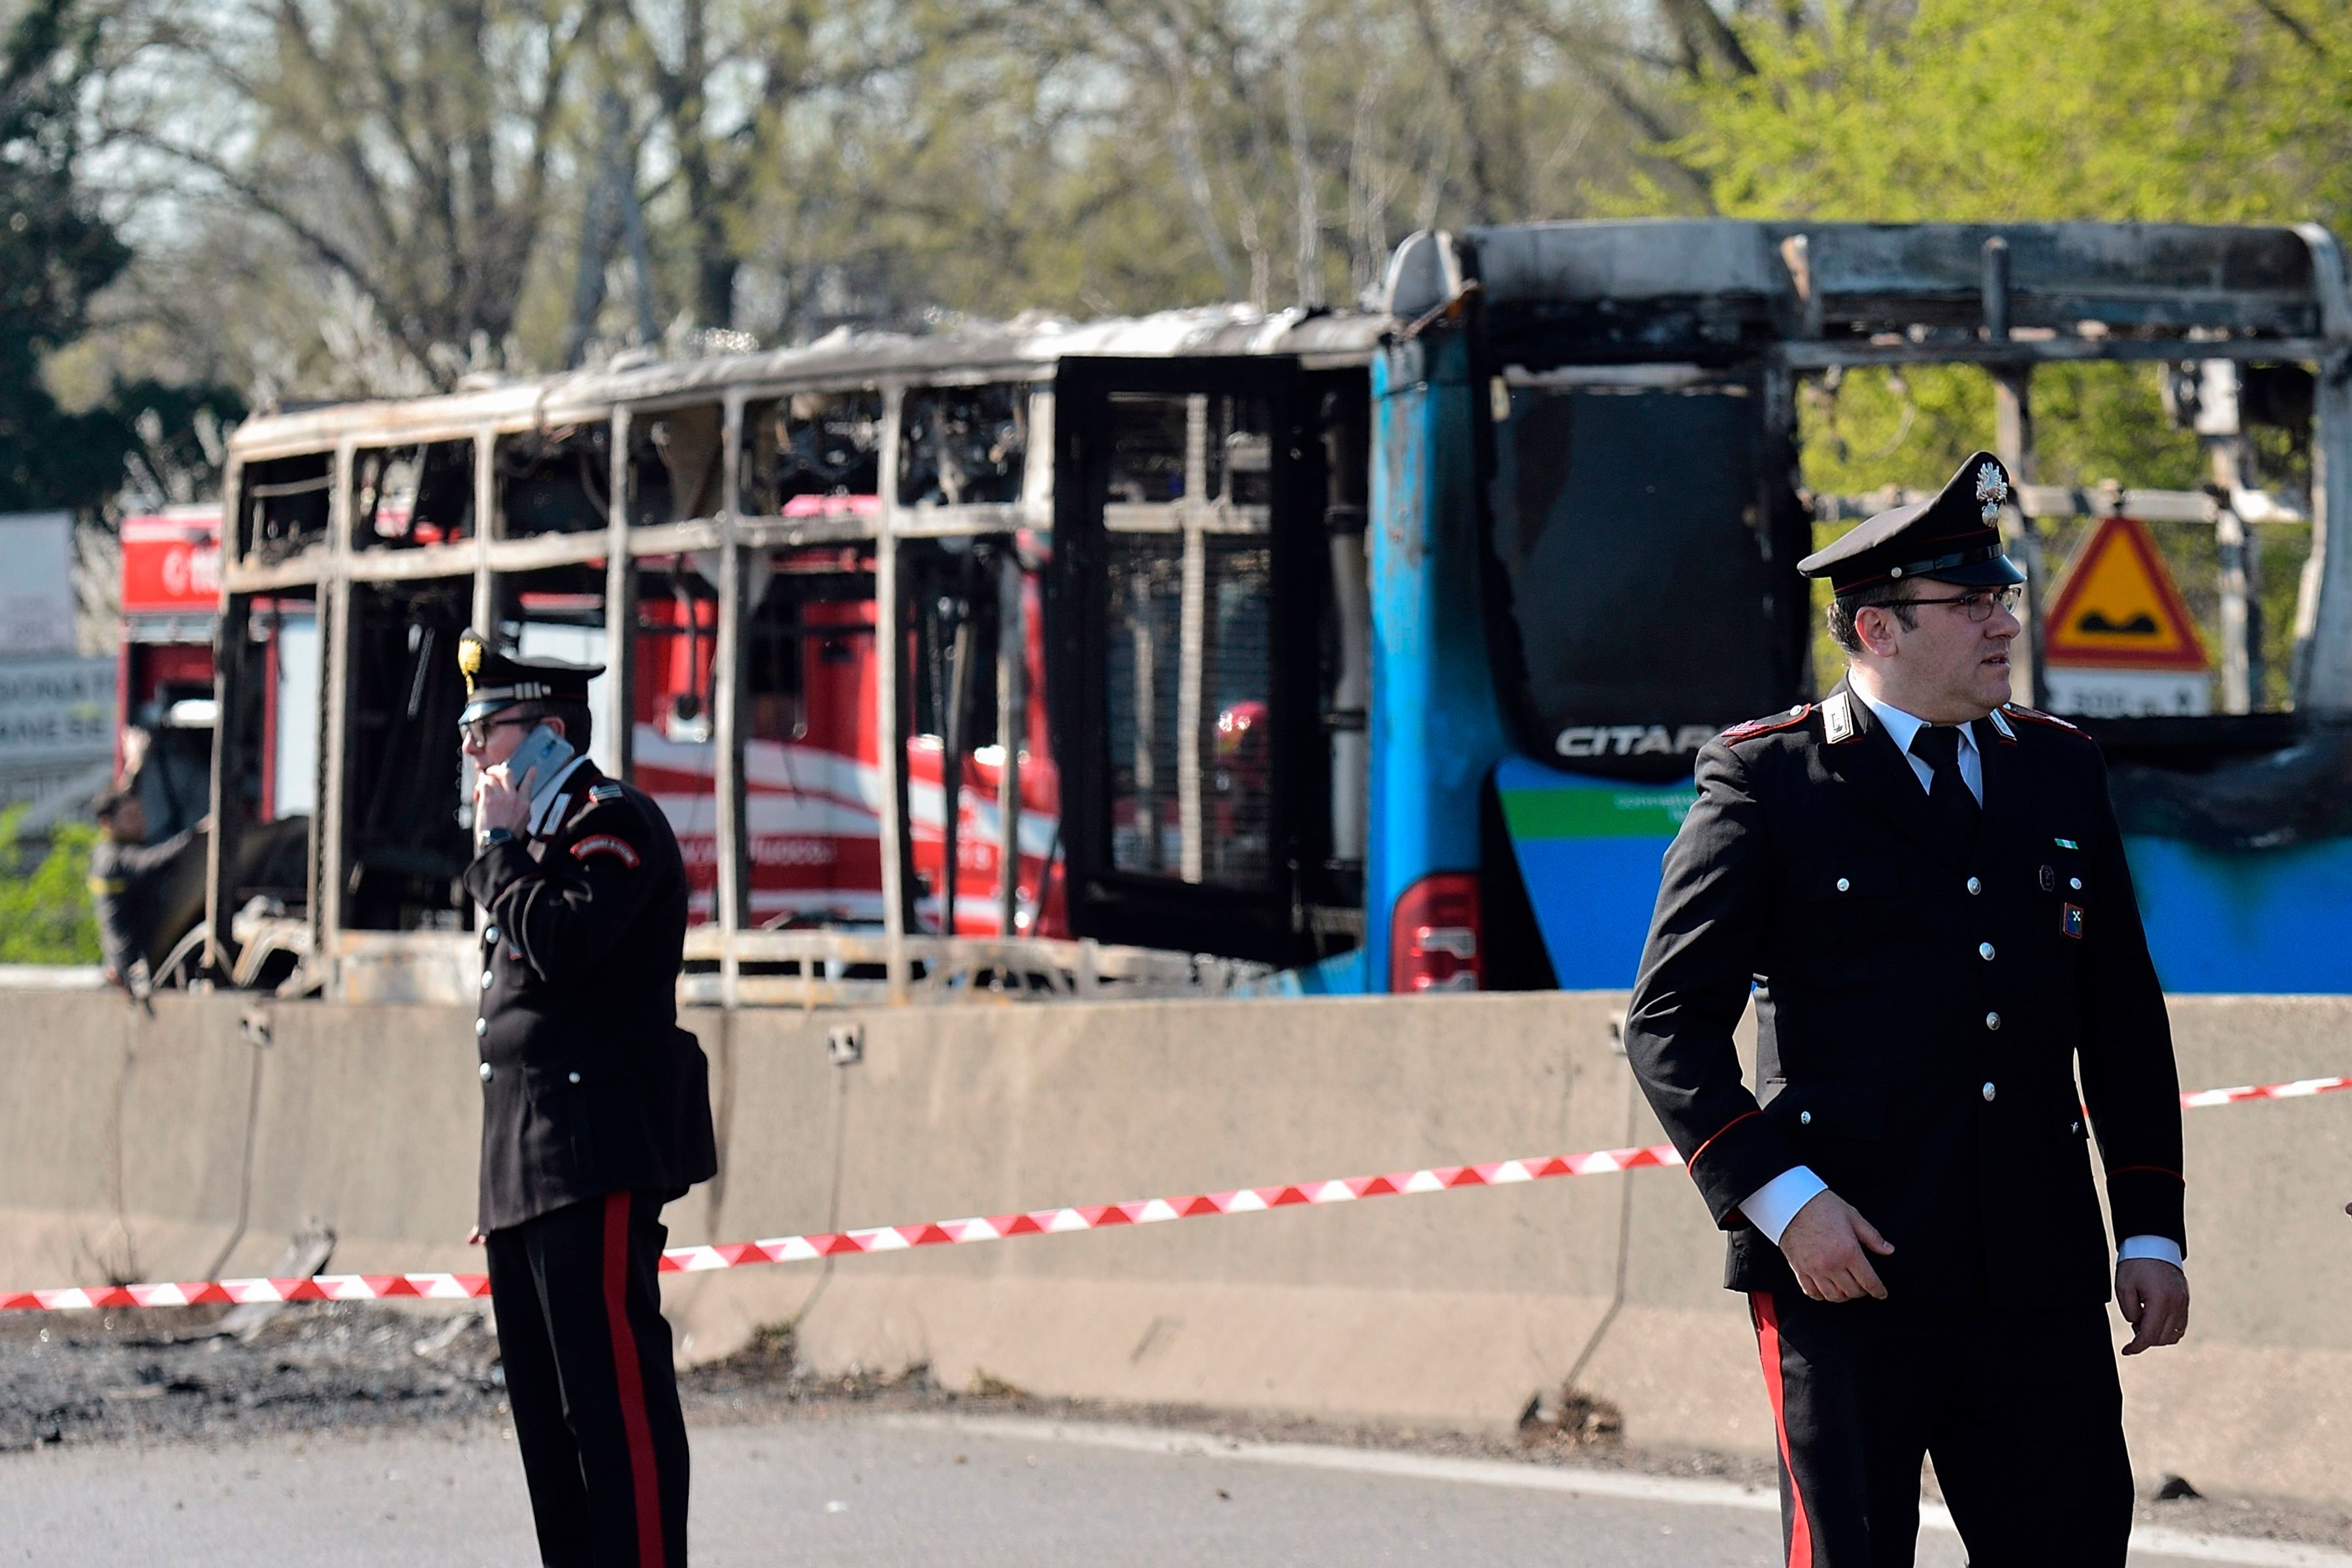 Itaian policemen work by the wreckage of a school bus that was transporting some 50 children on March 20, 2019 after it was torched by the bus' driver, in San Donato Milanese, southeast of Milan. - Italian police rescued some 50 children on March 20, 2019 after their driver threatened to torch their school bus which he doused with petrol, the authorities said. 'It is a miracle, it could have been carnage. The police were outstanding, blocking the bus and getting the children off,' said Milan prosecutor Francesco Greco, who added that he could not rule out a terrorist connection. (Photo by Flavio LO SCALZO / AFP)        (Photo credit should read FLAVIO LO SCALZO/AFP/Getty Images)